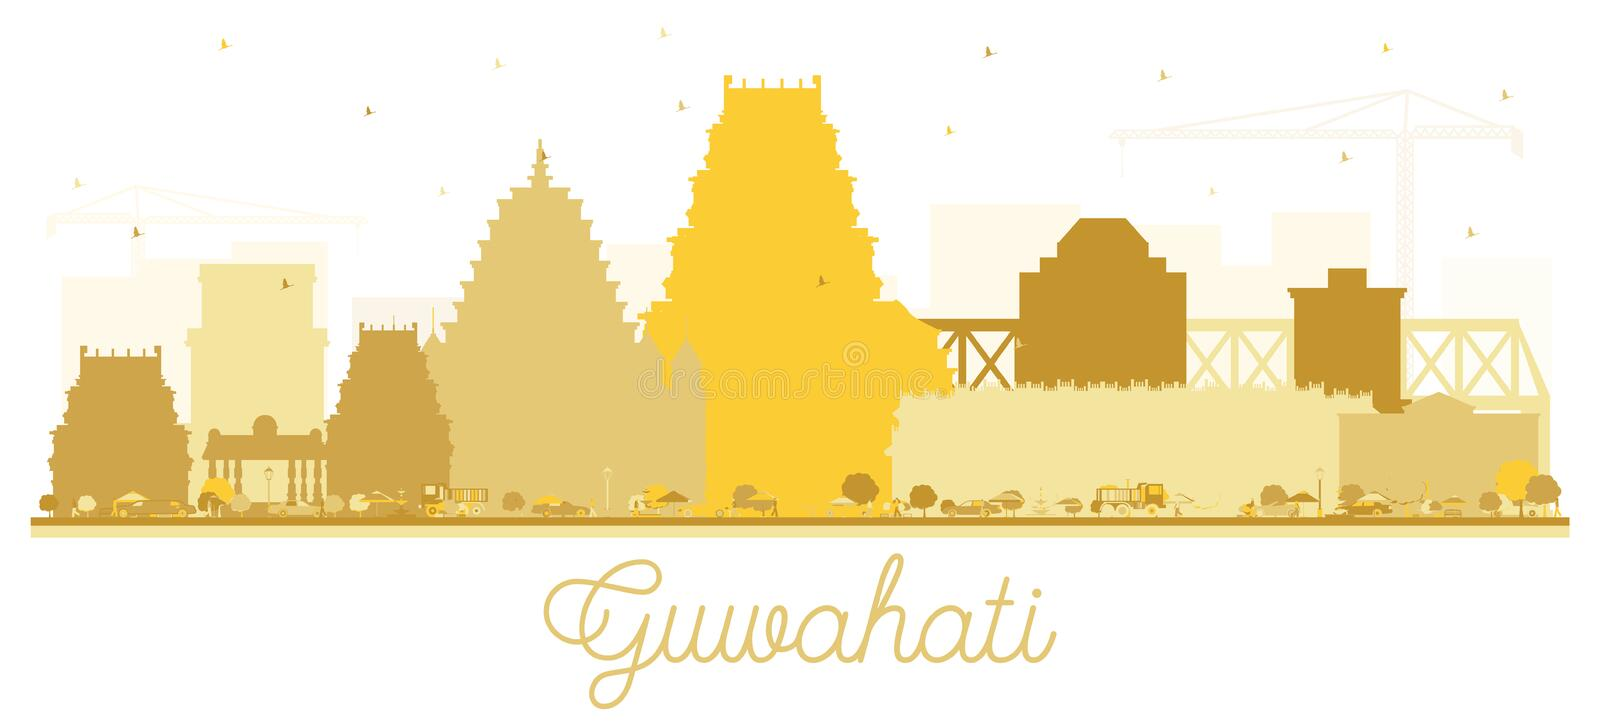 Guwahati India City Skyline Silhouette with Golden Buildings. Vector Illustration. Business Travel and Tourism Concept with Historic Architecture. Guwahati stock illustration